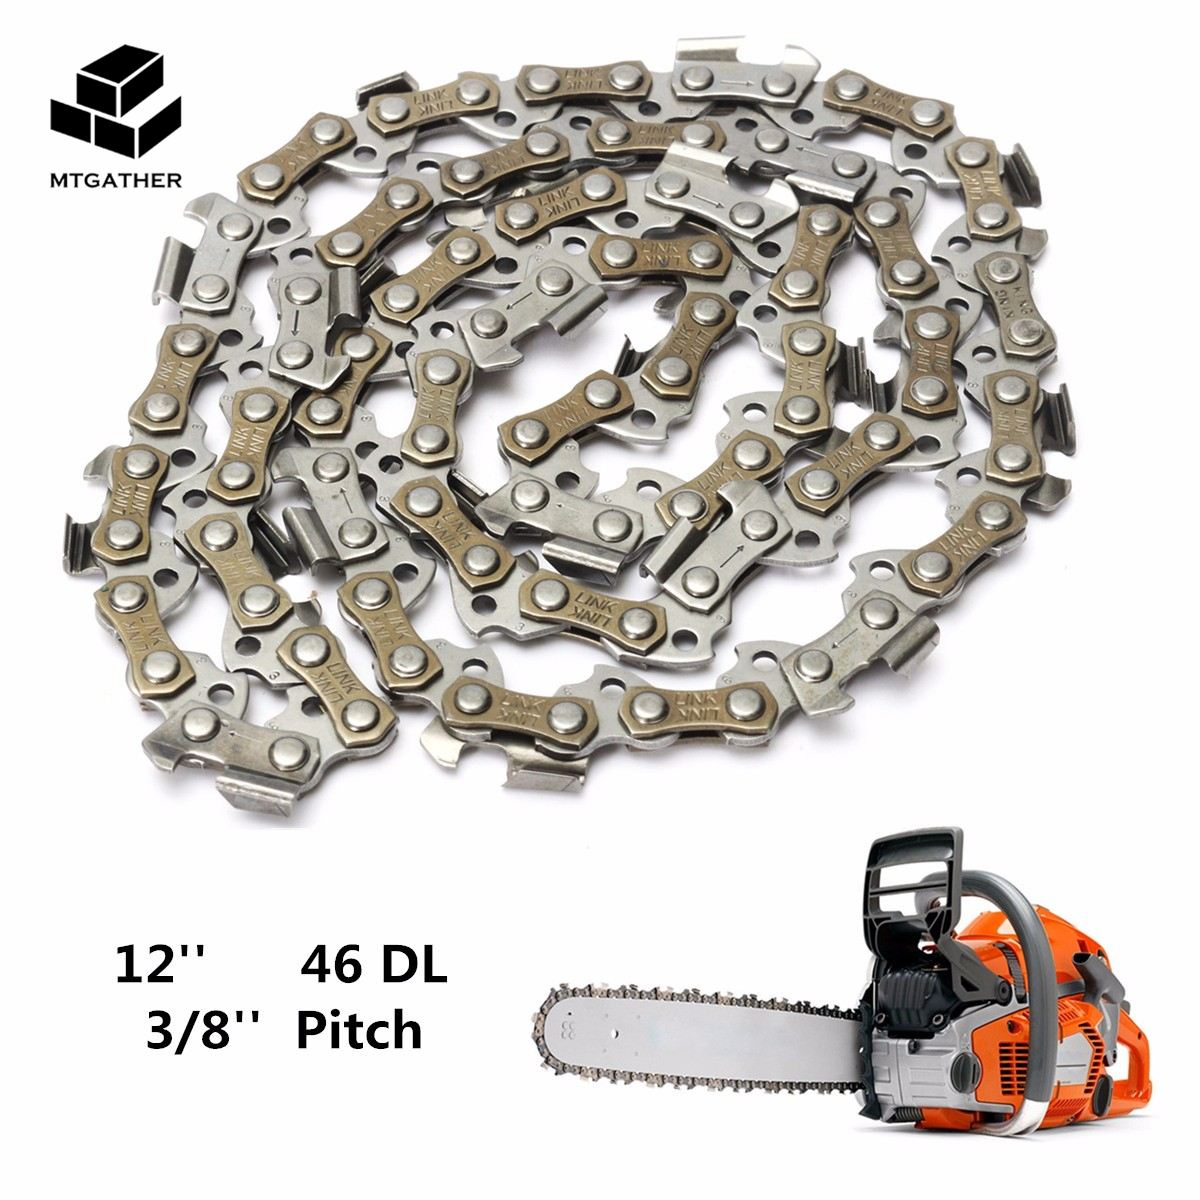 MTGATHER Substitution Chainsaw Saw Mill Chain Blade 12'' 46 Drive Link 3/8'' Pitch 050 Gauge for Wood Cutting Chainsaw Parts 16 size chainsaw chains 3 8 063 1 6mm 60drive link quickly cut wood for stihl 039